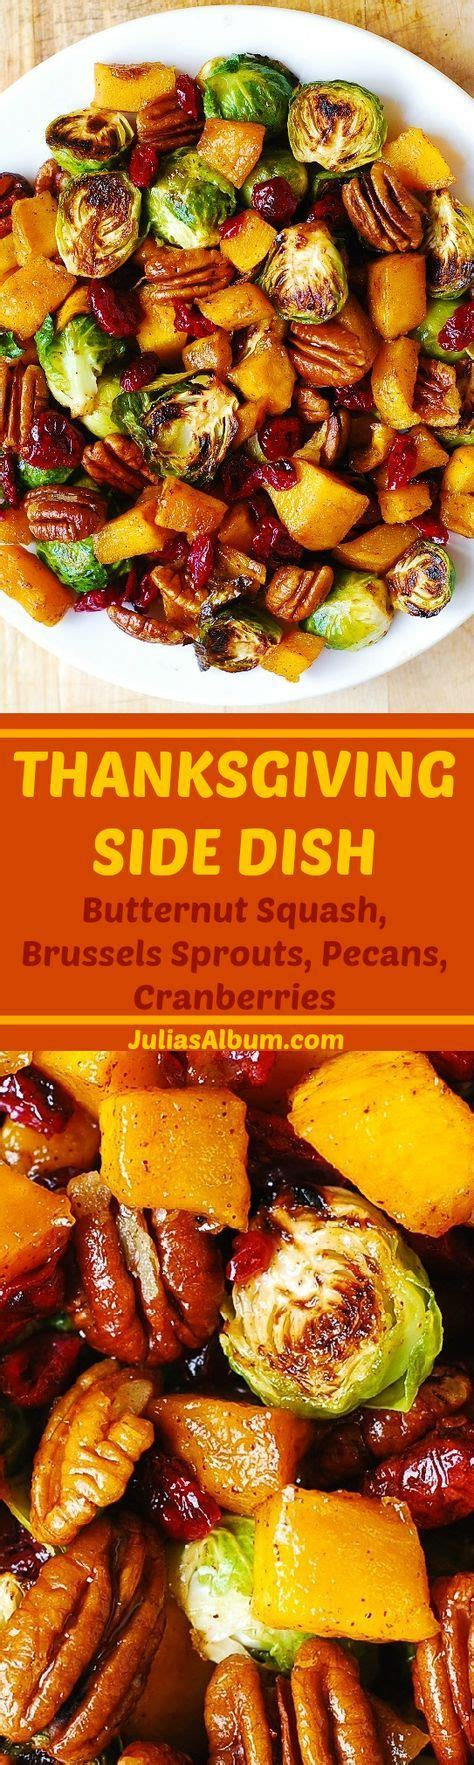 Come With Me Vegetarian Thanksgiving Ae Invites by Best 25 Thanksgiving Recipes Ideas On